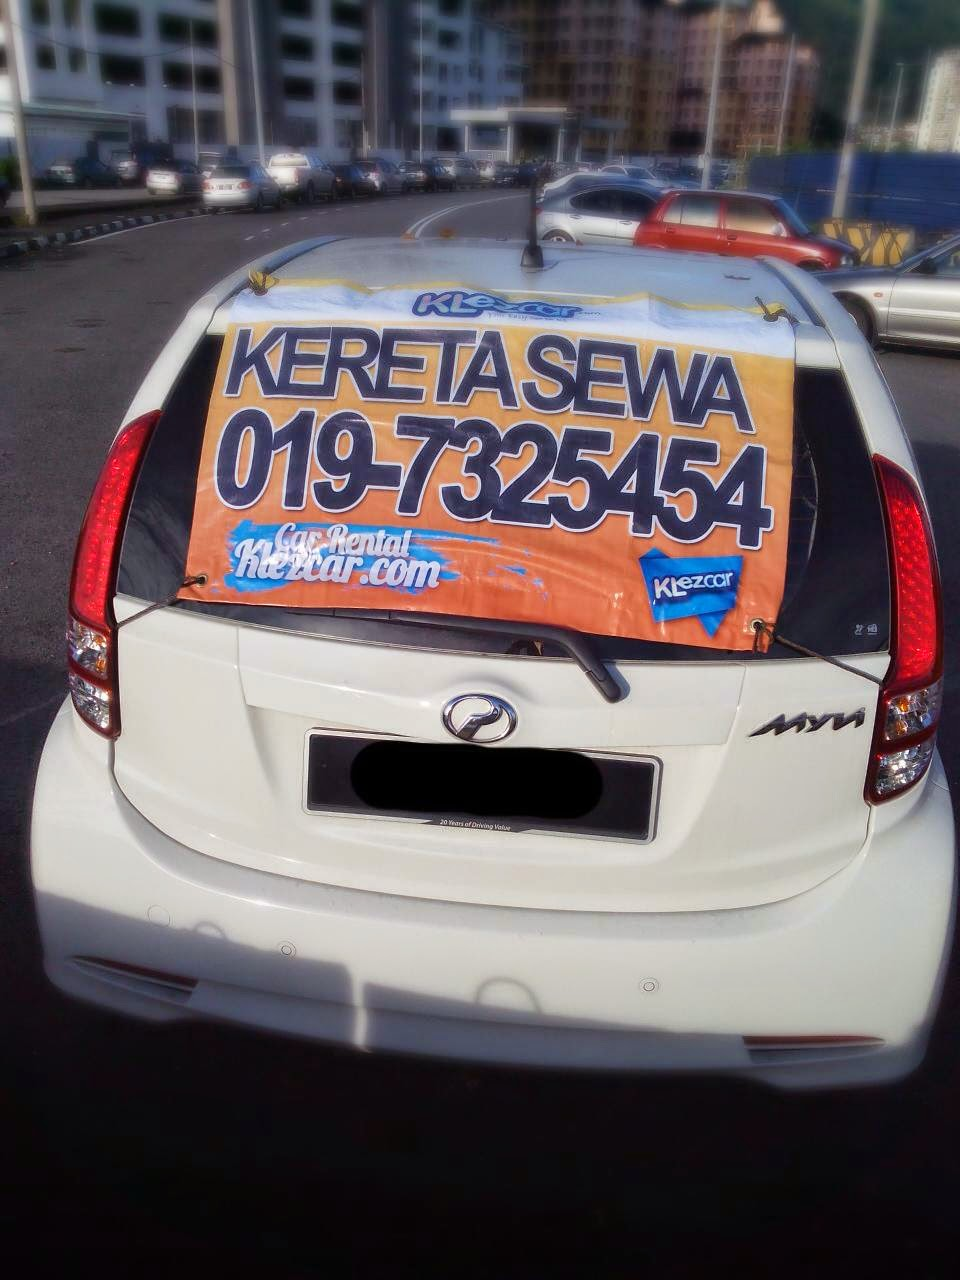 Car rental in penang